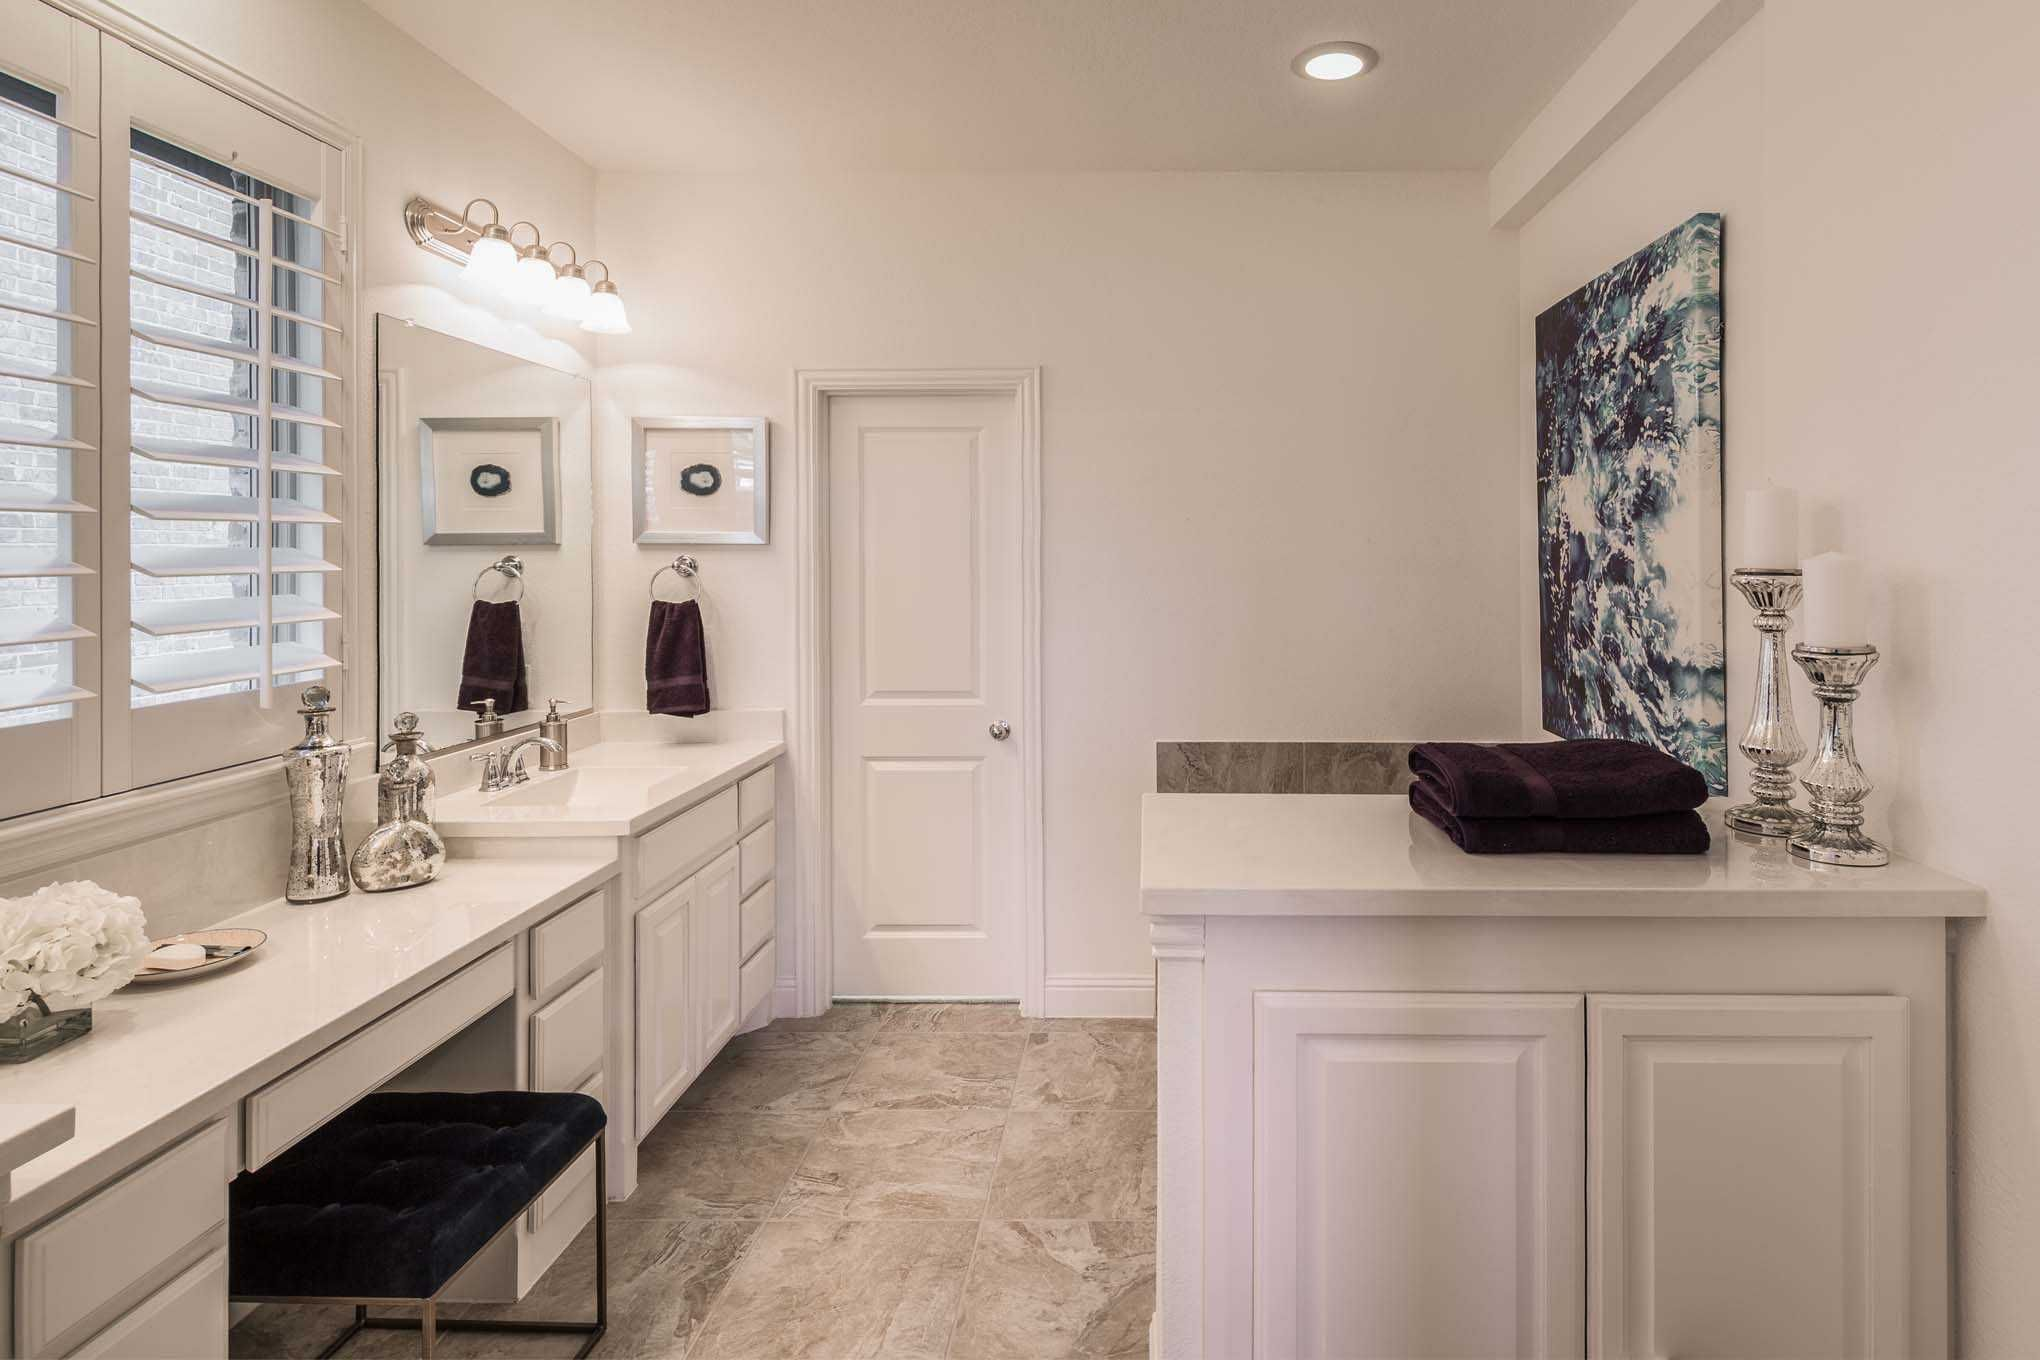 Highland Homes plan 206 Model Home in Dallas / Fort Worth